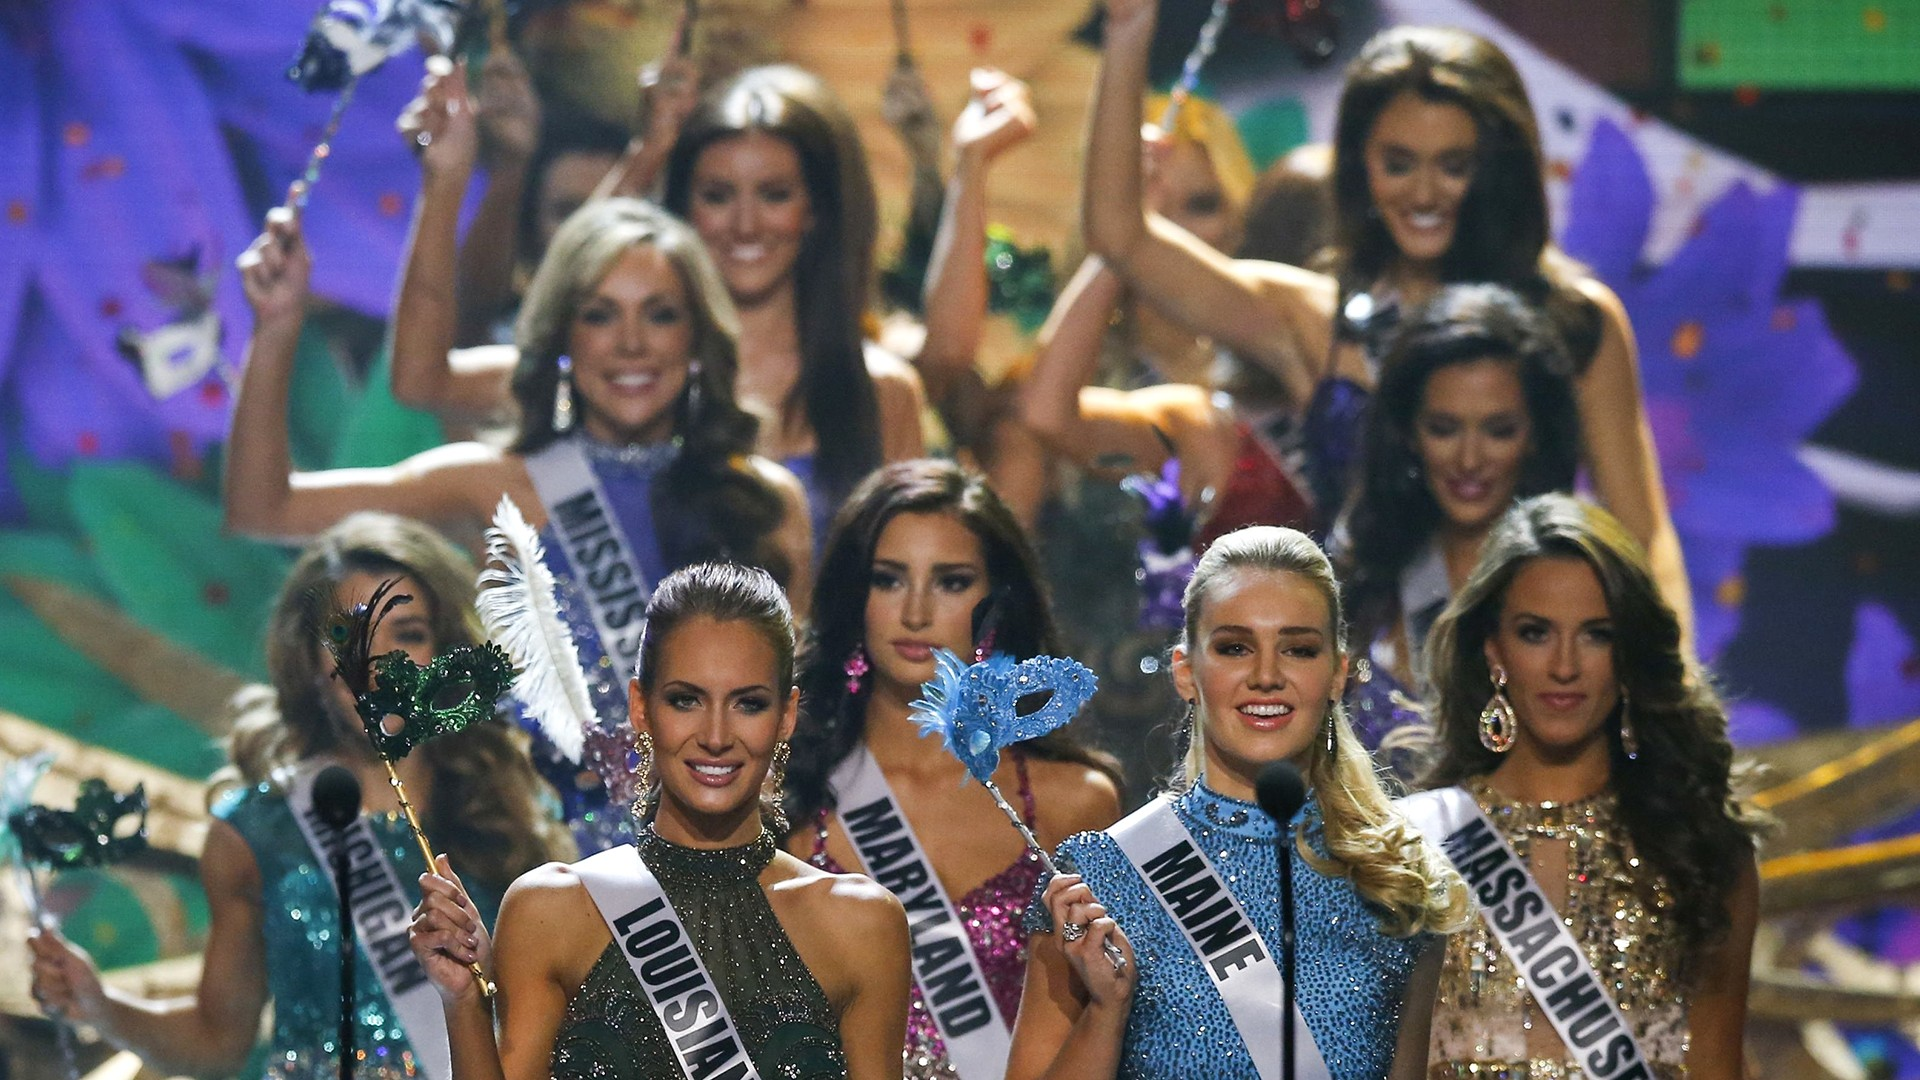 Image: Miss USA contestants take the stage during the 2014 Miss USA beauty pageant in Baton Rouge, Louisiana